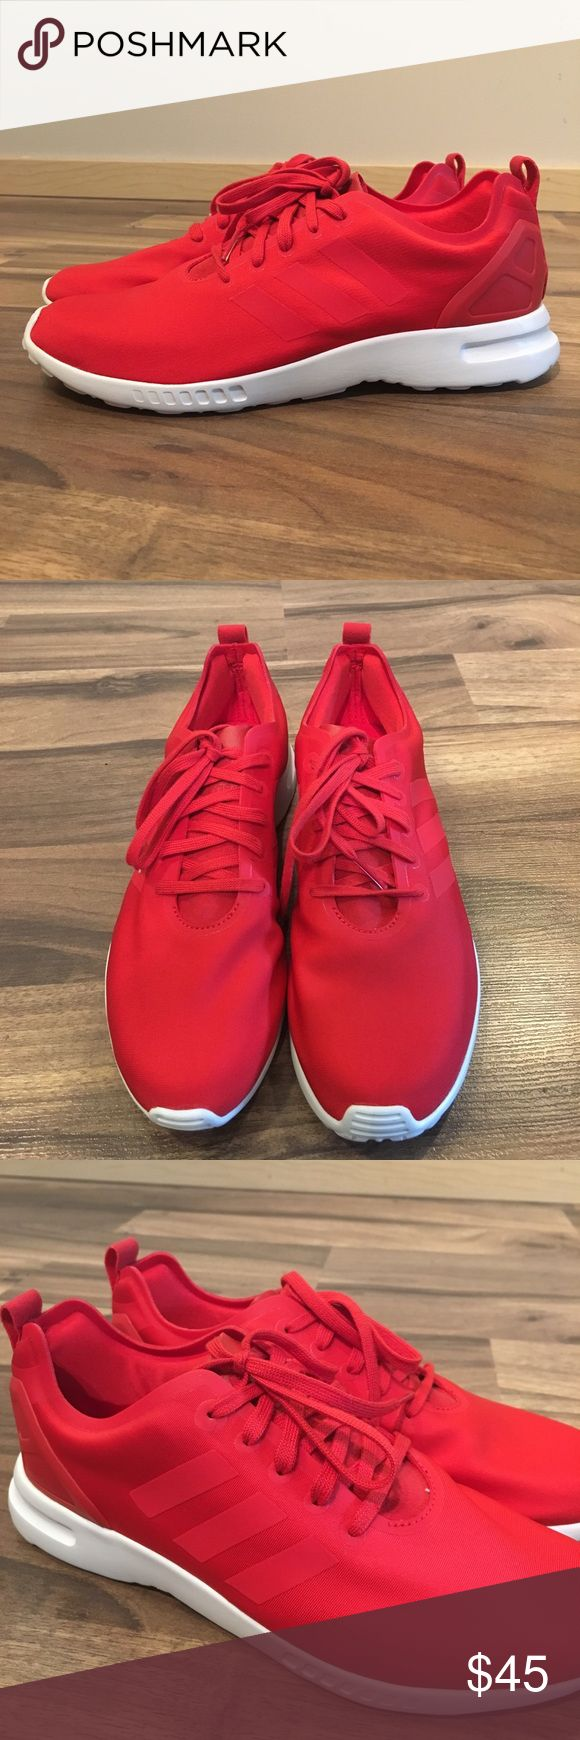 Adidas Shoes Red Color